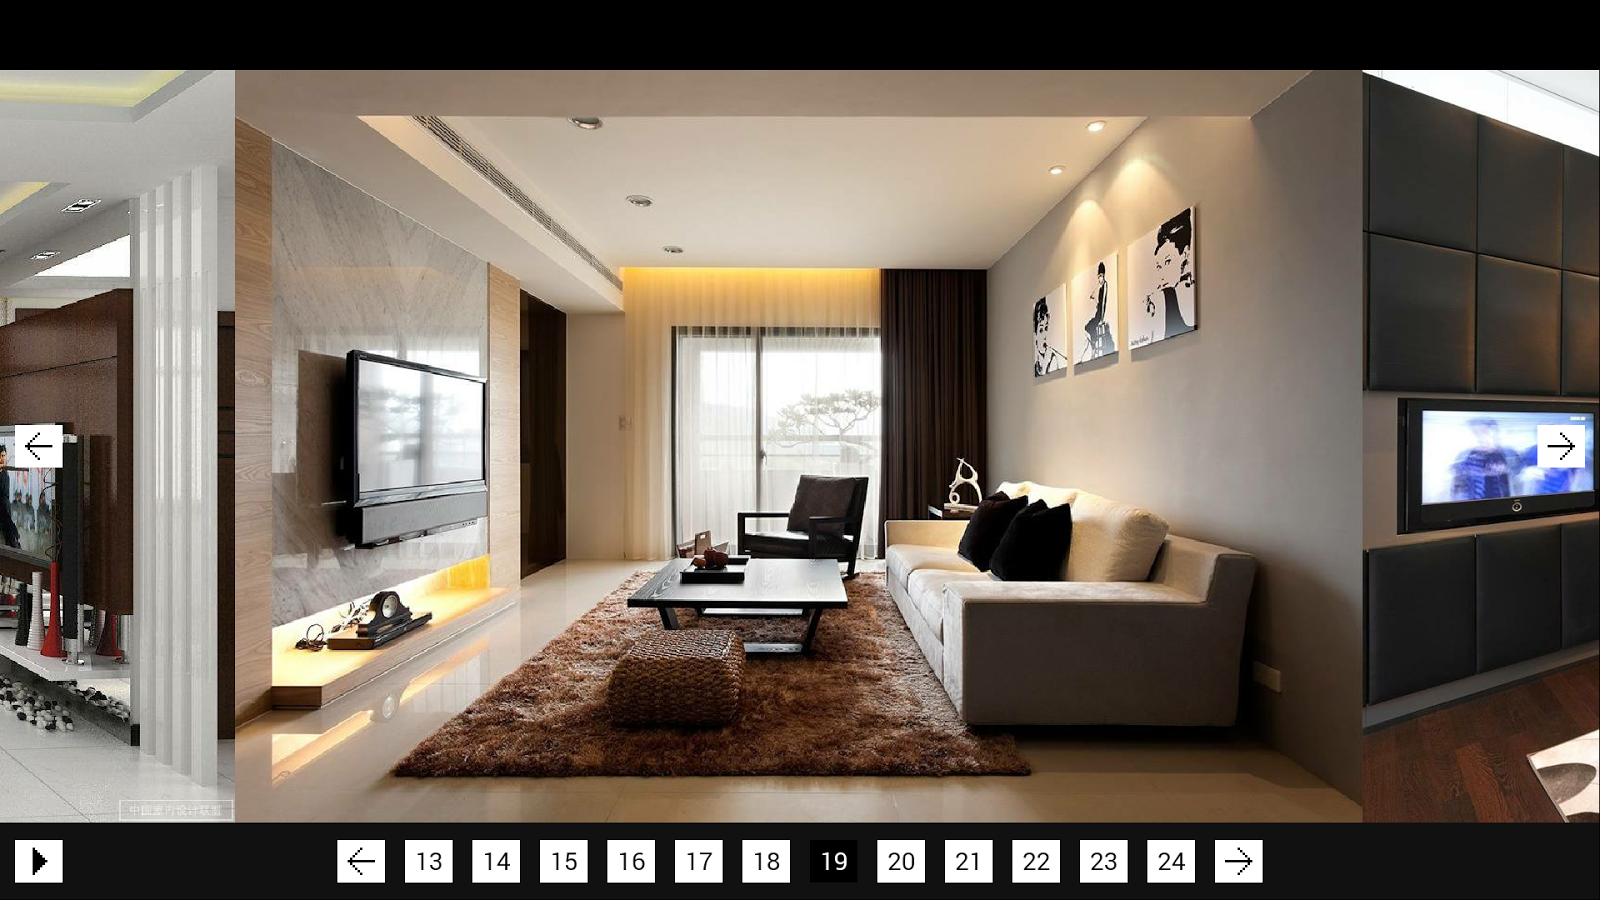 Home interior design android apps on google play Program design interior 3d free